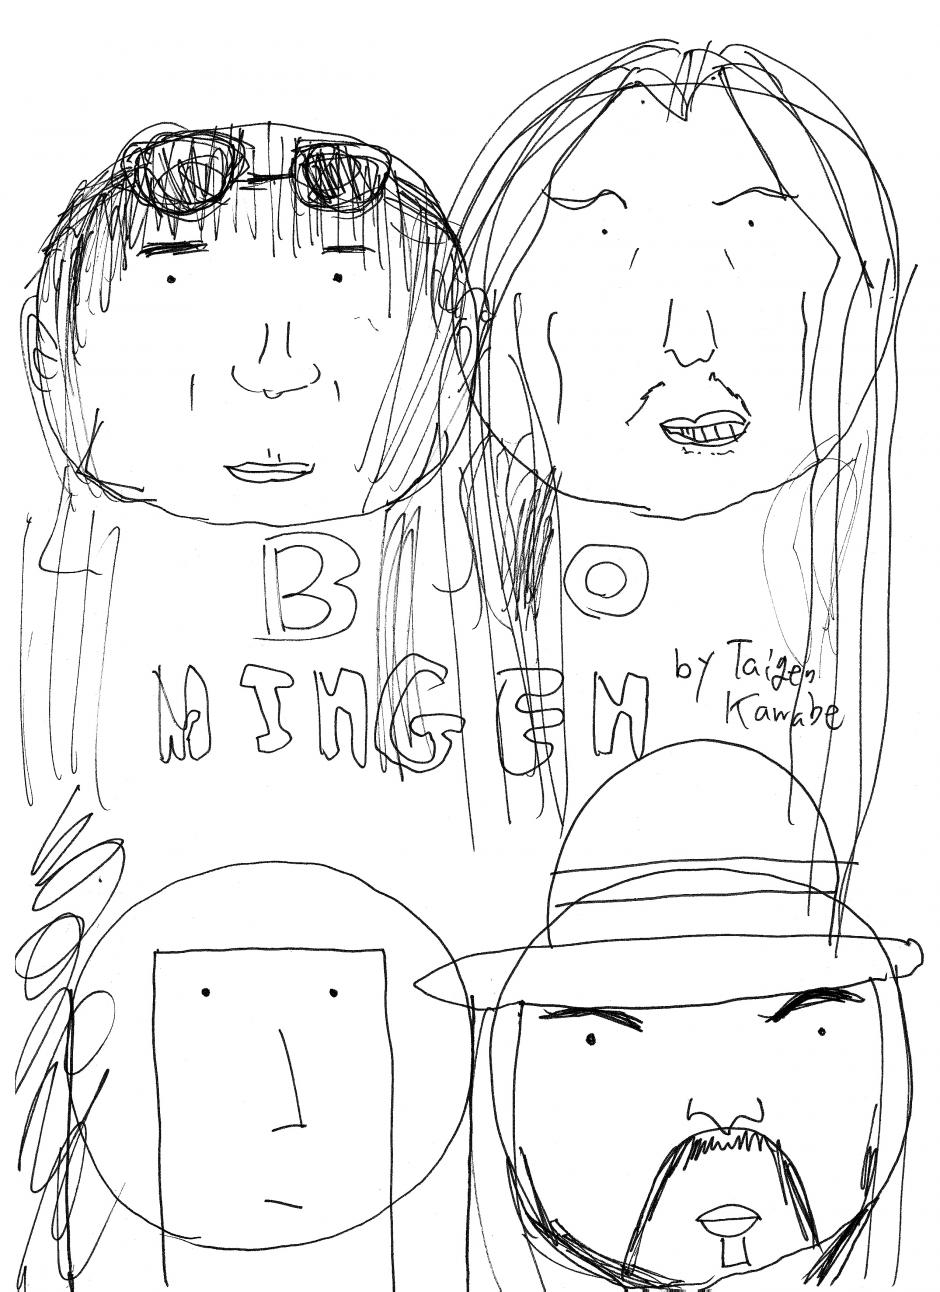 songbook piled by bad bonn venue the wire New Moon Car bo ningen drawing by taigen kamabe